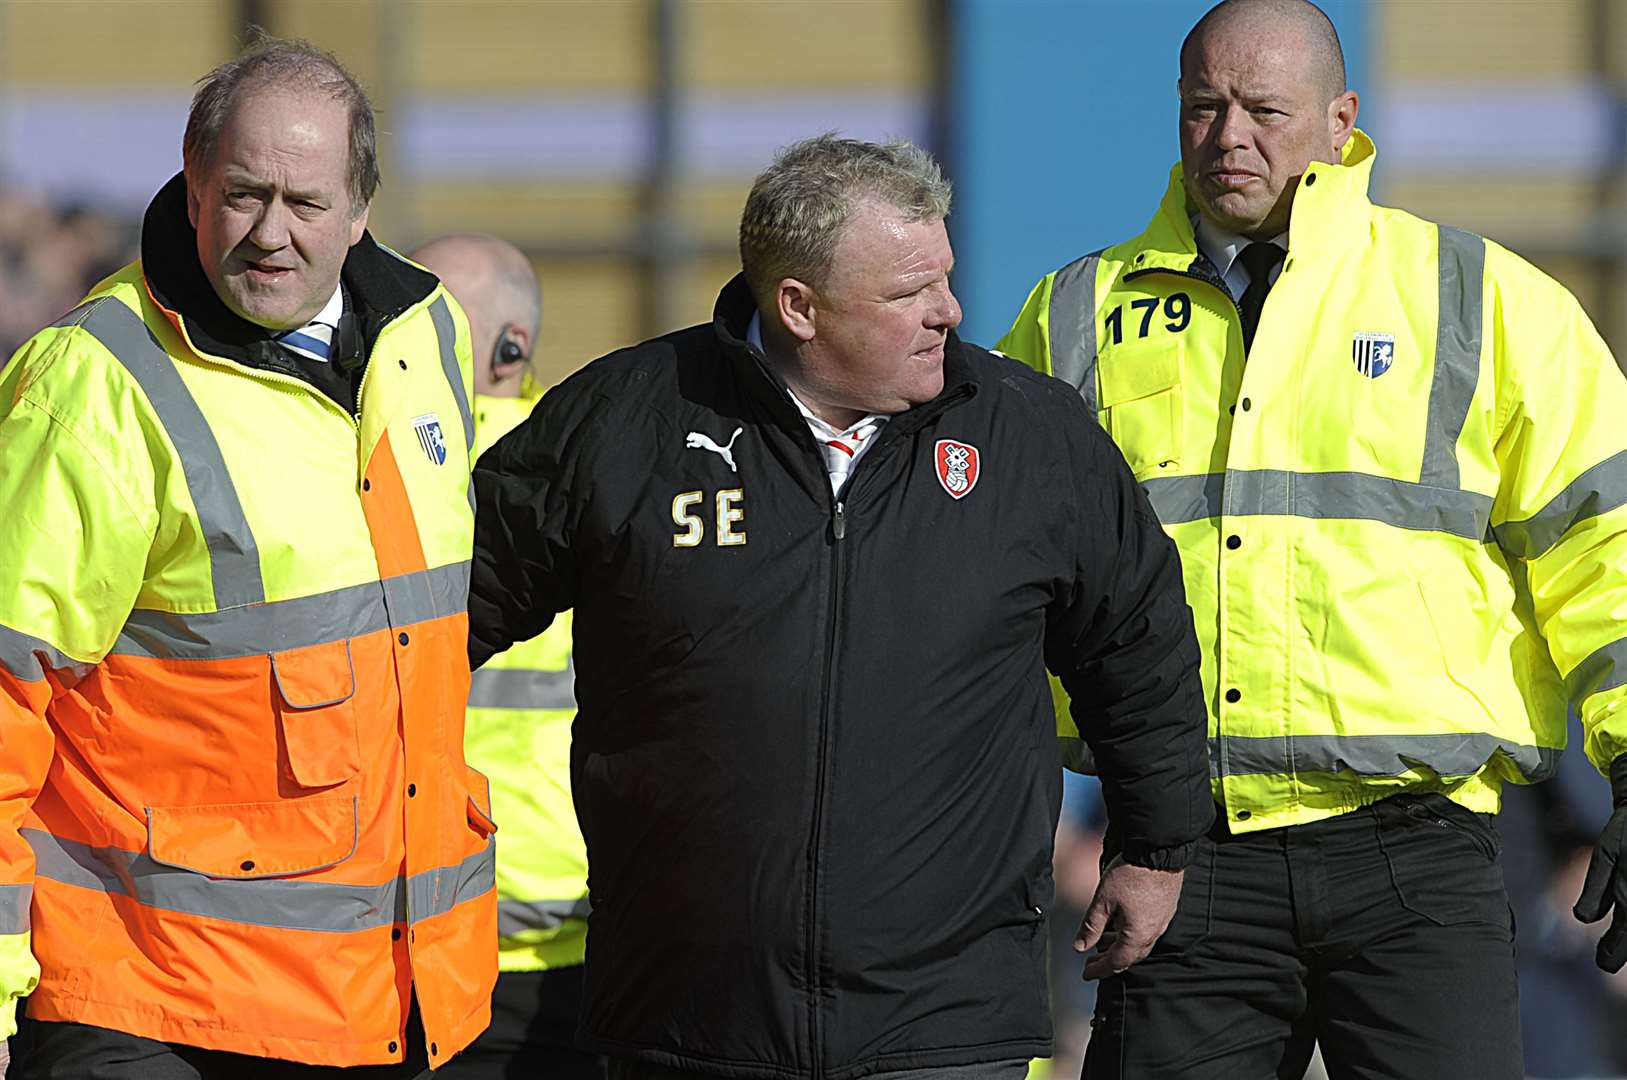 Steve Evans during his visit to Priestfield as Rotherham manager in 2013 Picture: Barry Goodwin